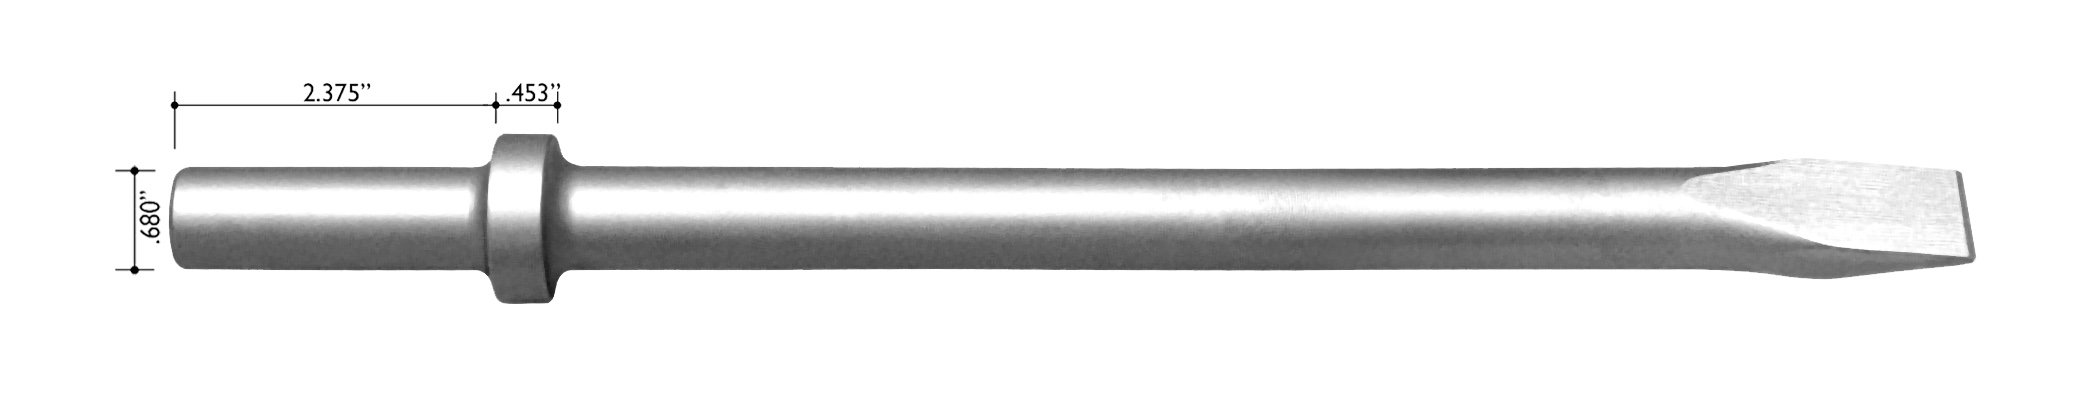 Champion Chisel, 18-Inch Long .680 Round Shank Round Collar Chipping Hammer Narrow, Flat Chisel